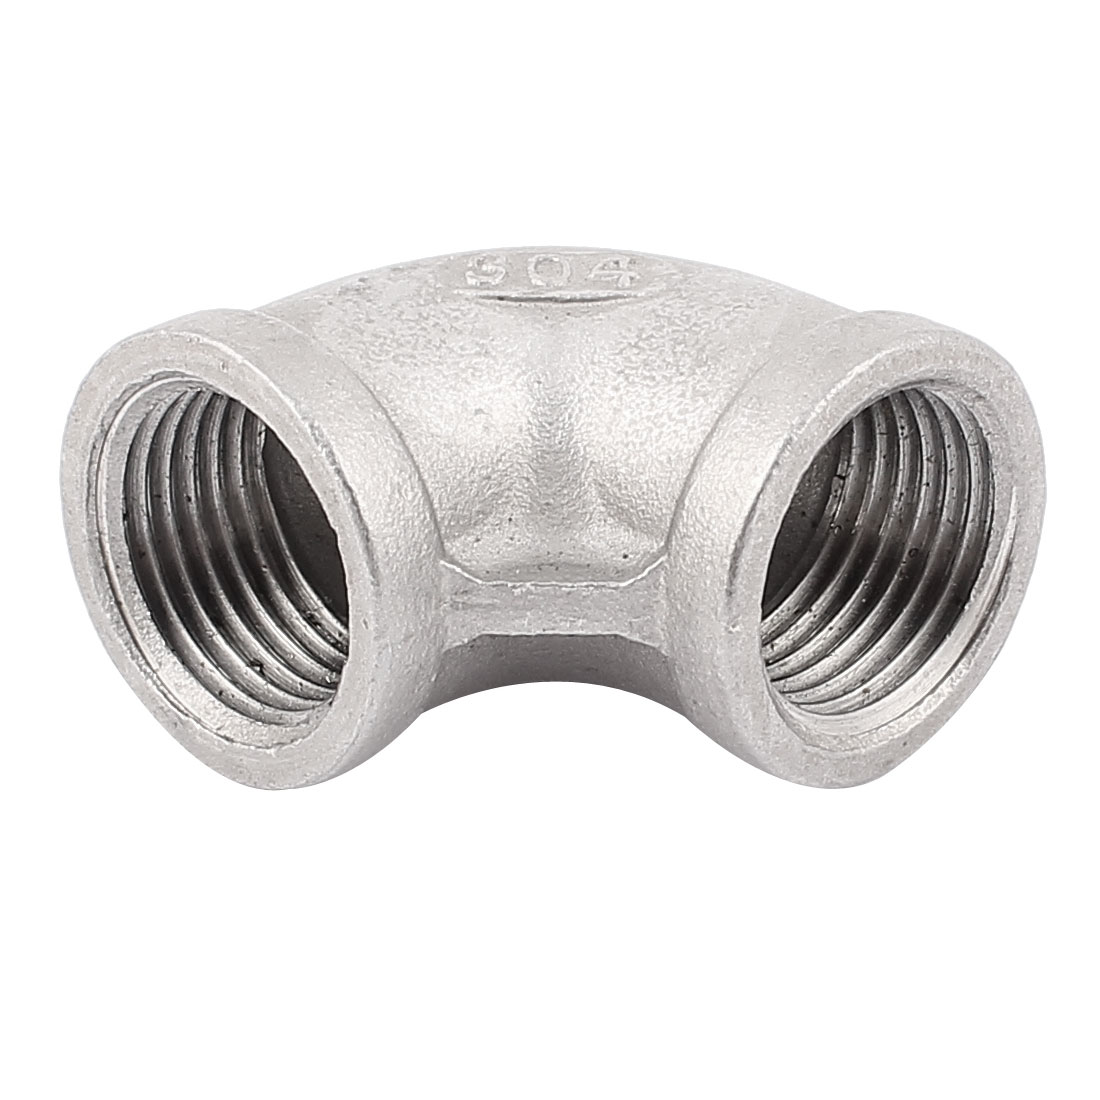 1/2BSP Female 304 Stainless Steel 90 Degree Equal Elbow Pipe Fitting Connector